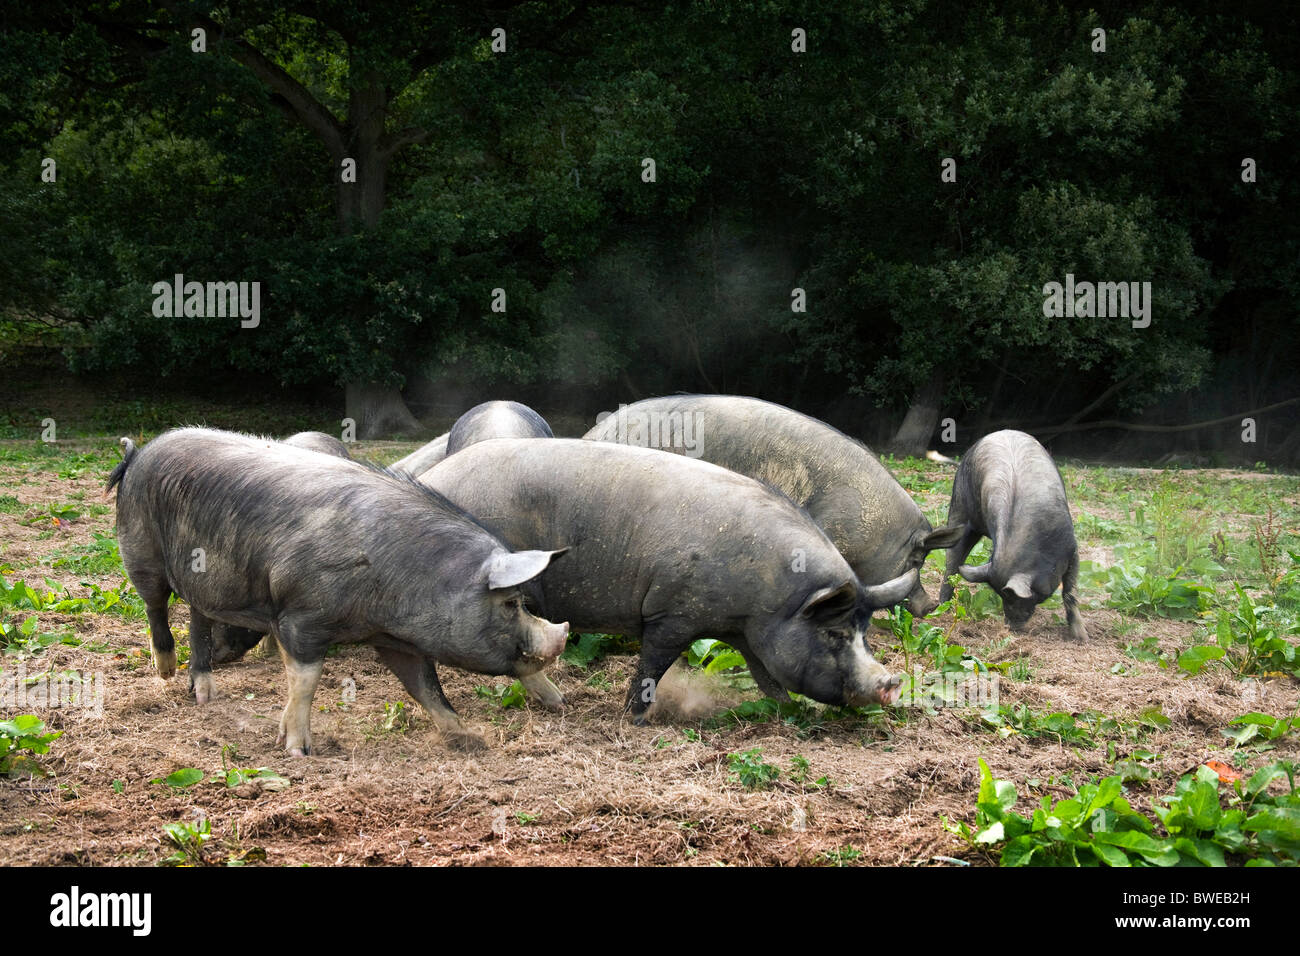 Free-range Berkshire pigs foraging in a field and wood at Hurst Green Sussex UK - Stock Image